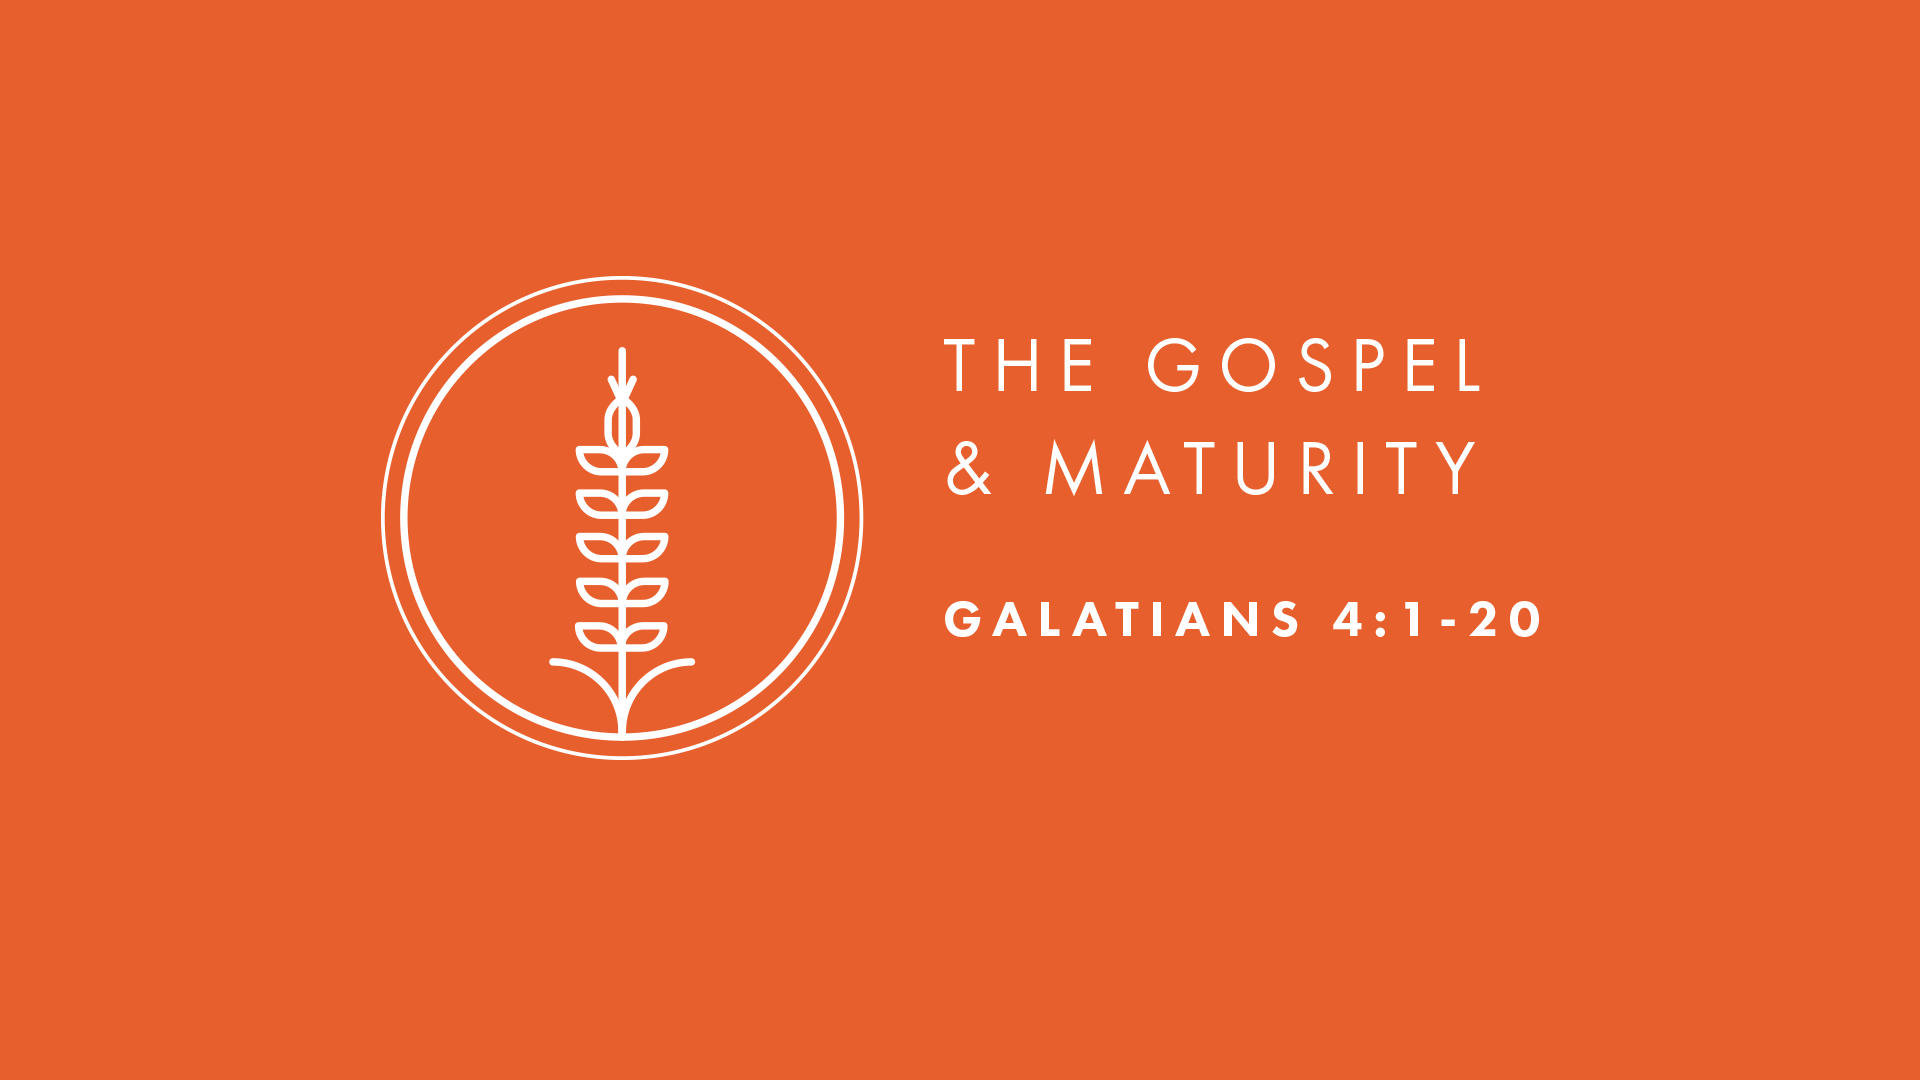 The Gospel and Maturity